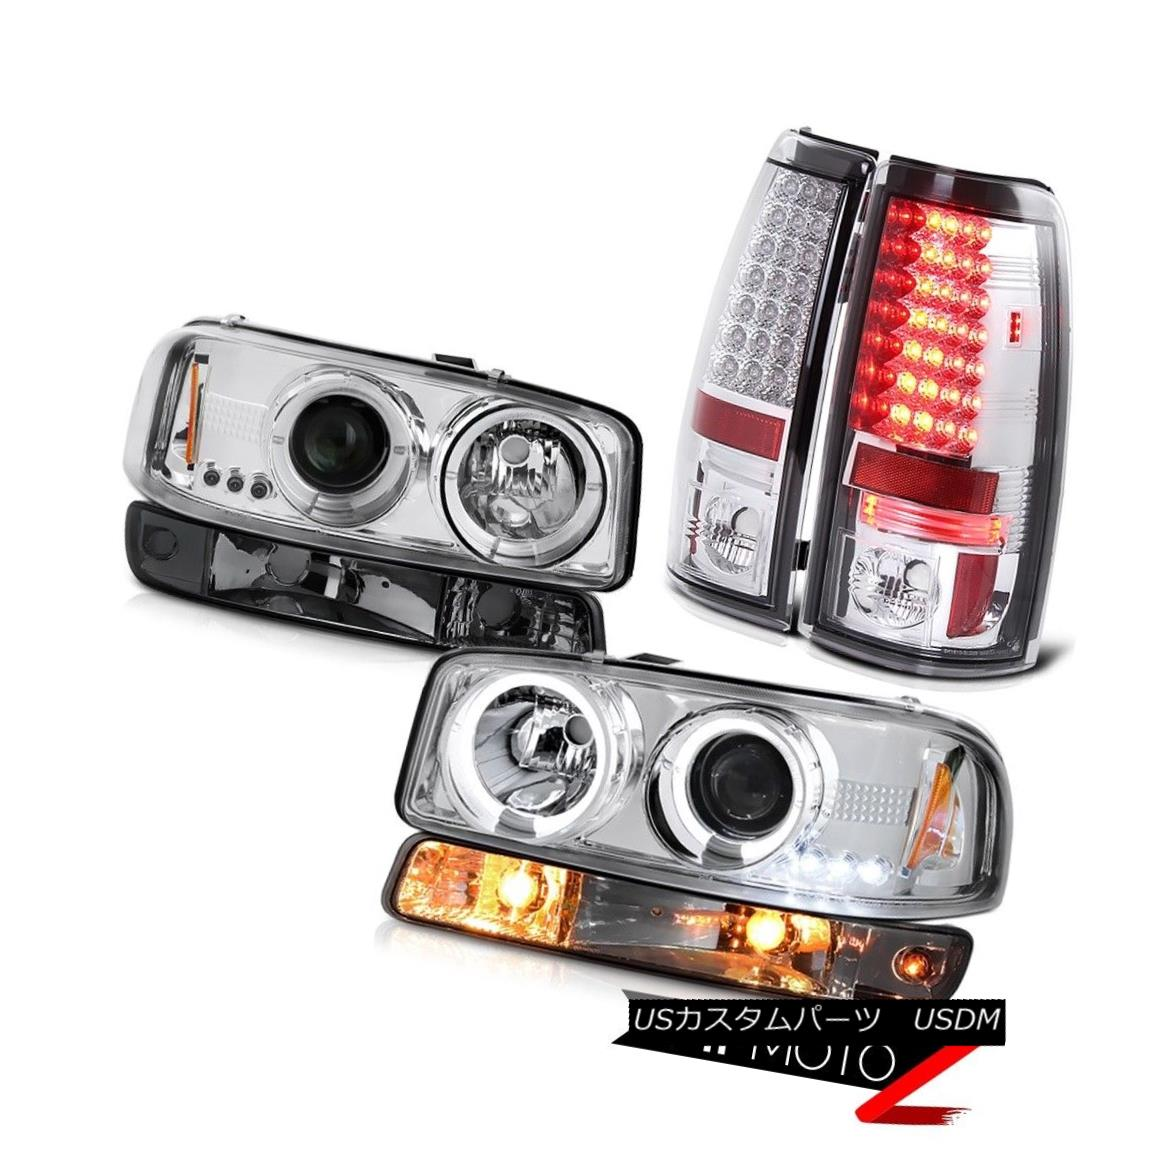 テールライト 1999-2006 Sierra 2500HD Parking brake lights smoked signal light headlamps SMD 1999-2006 Sierra 2500HDパーキングブレーキ灯信号灯ヘッドランプSMD